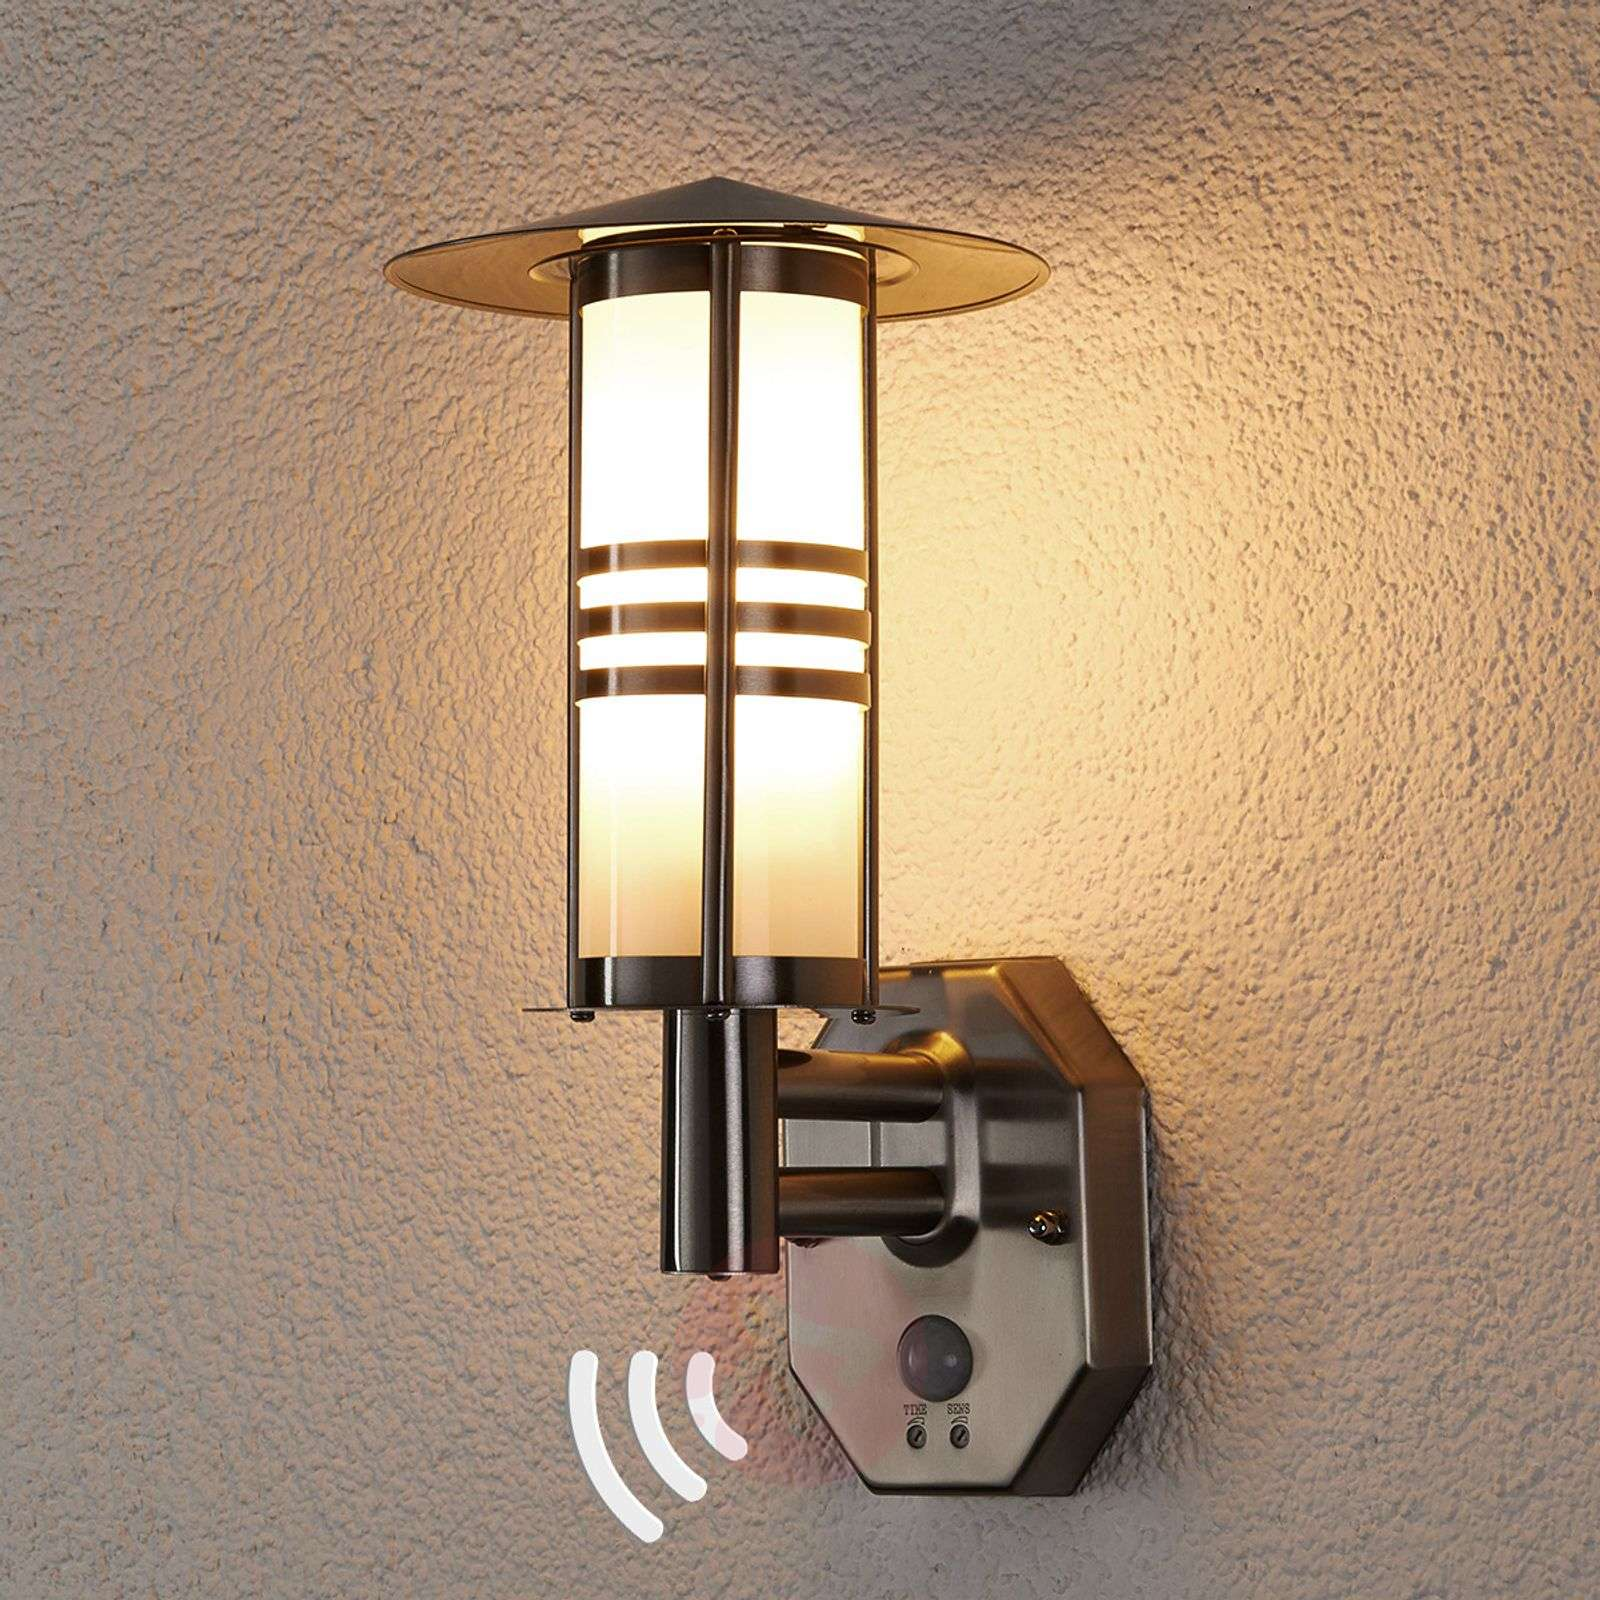 Erina Motion Detector Outdoor Wall Lamp-9960014-01